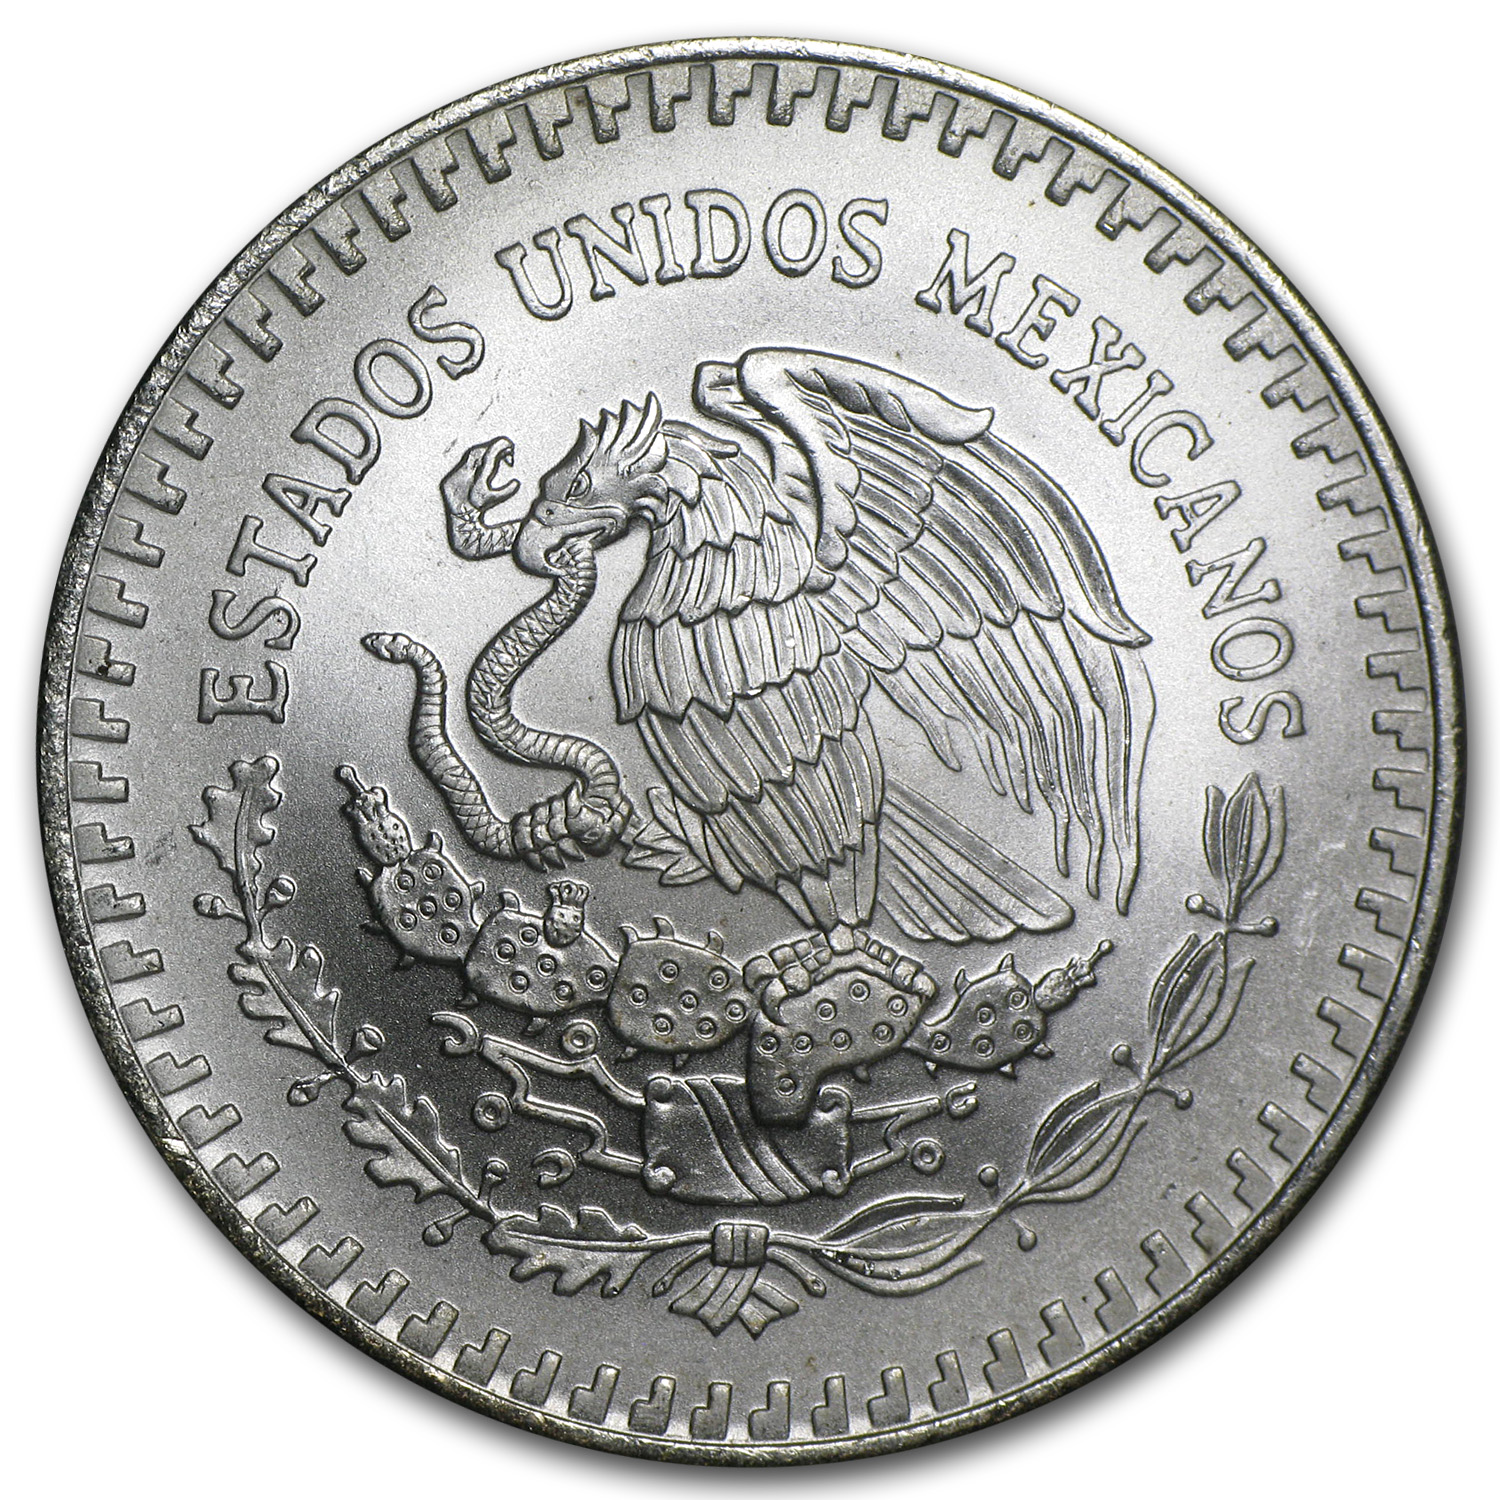 1991 1 oz Silver Mexican Libertad (Brilliant Uncirculated) Type 2